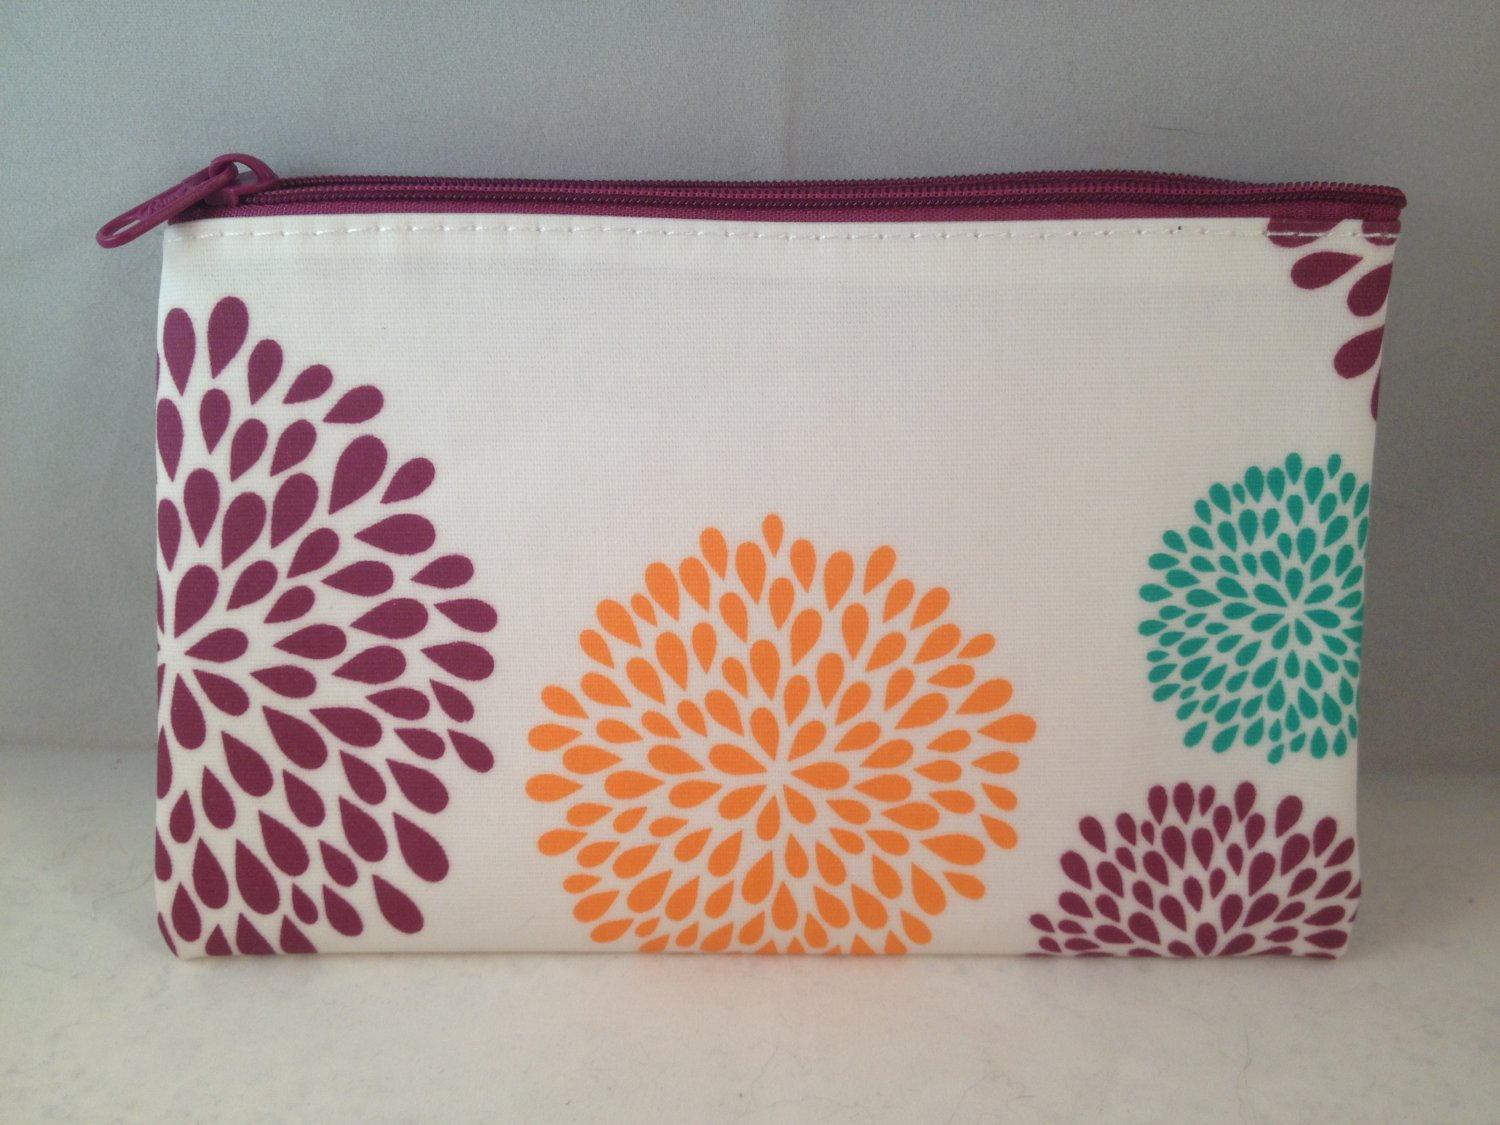 Poise Travel Bag makeup clutch empty zippered toiletry